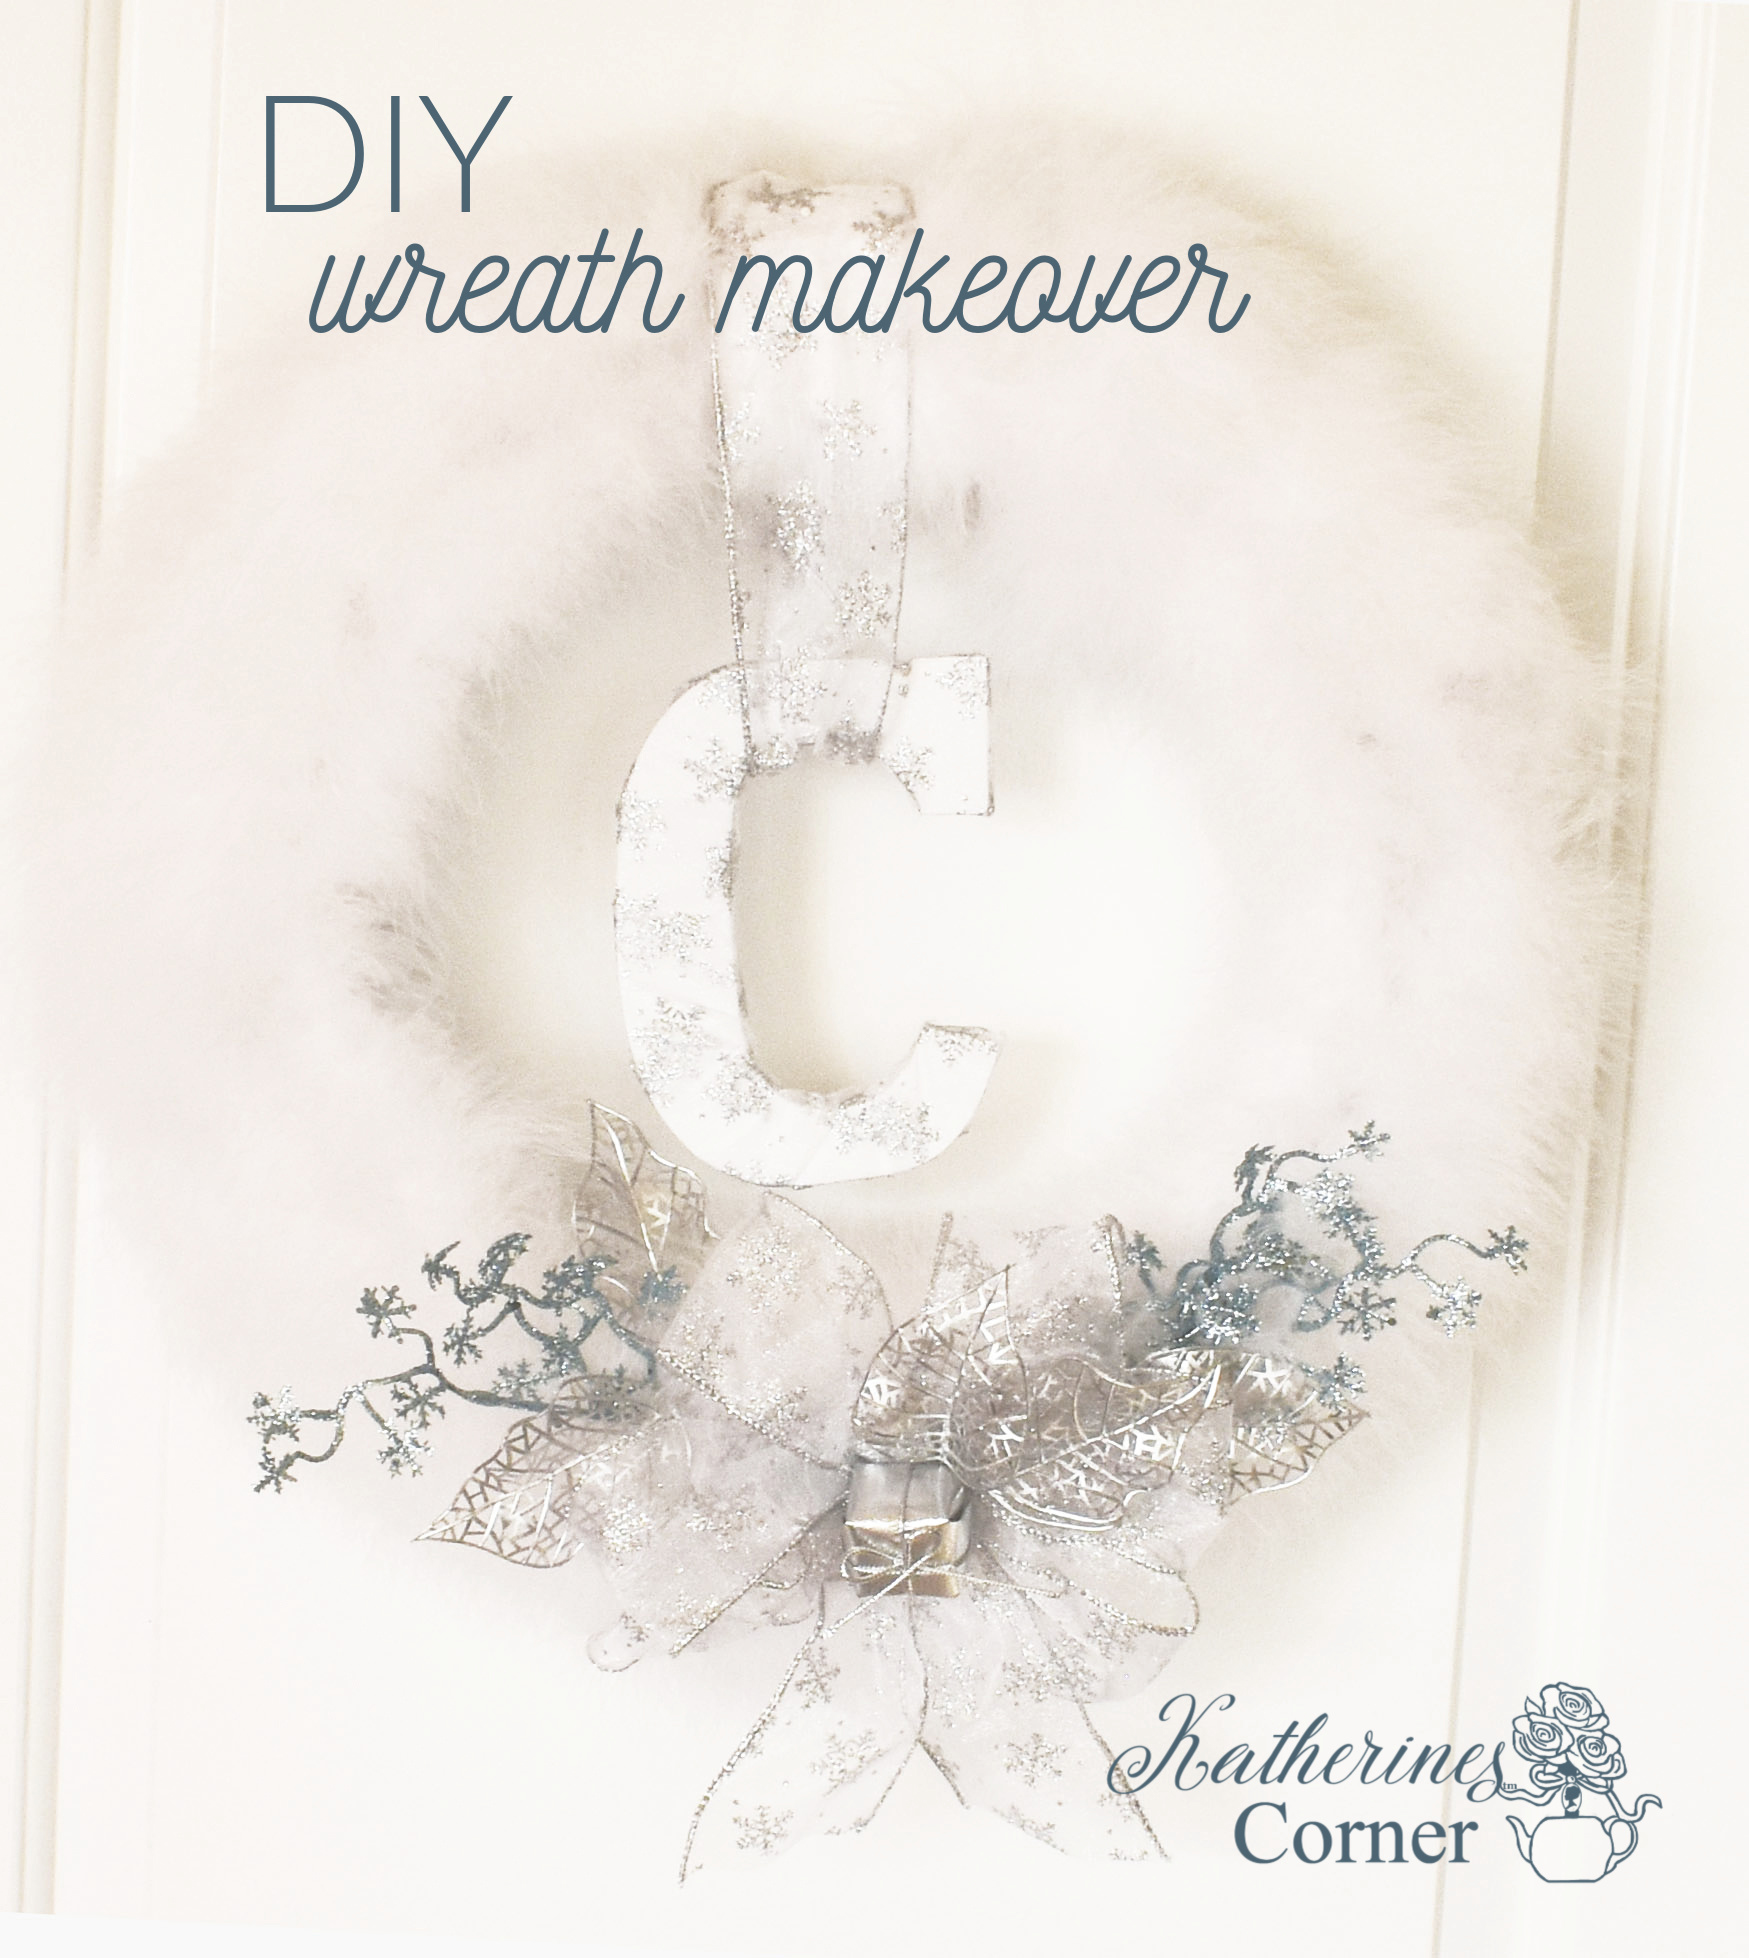 DIY Wreath Makeover